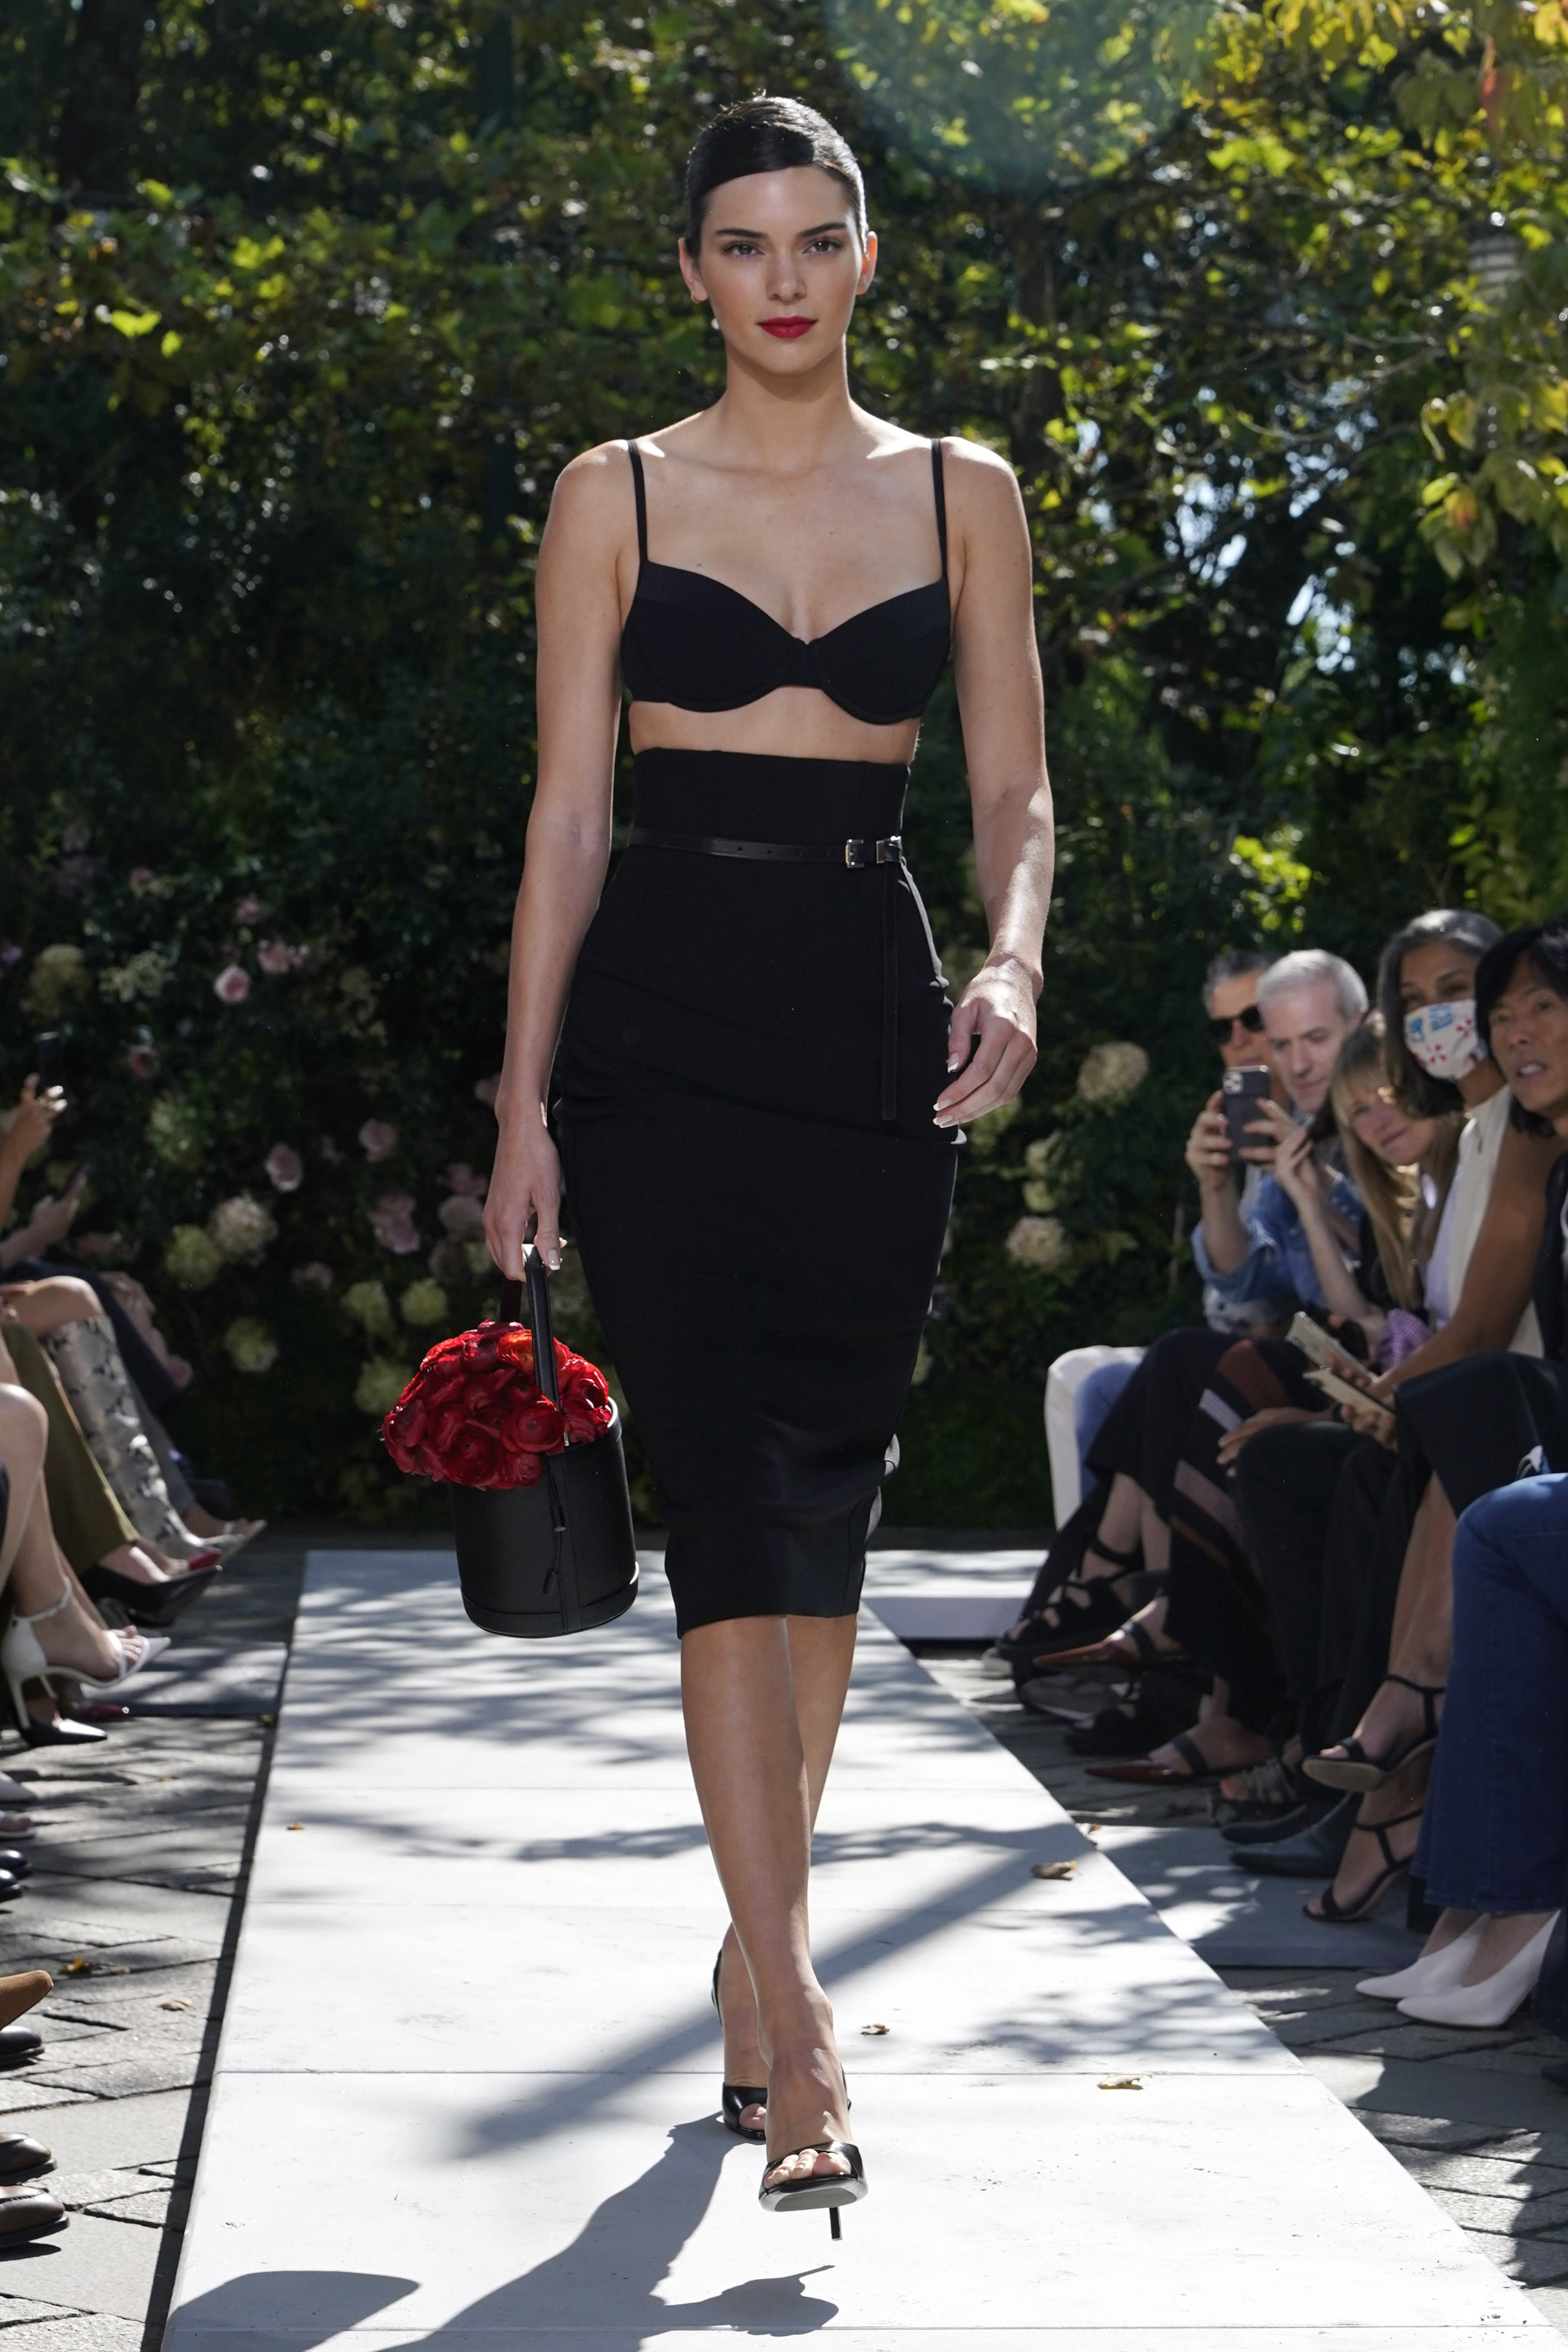 Designer Michael Kors holds first live fashion show since pandemic